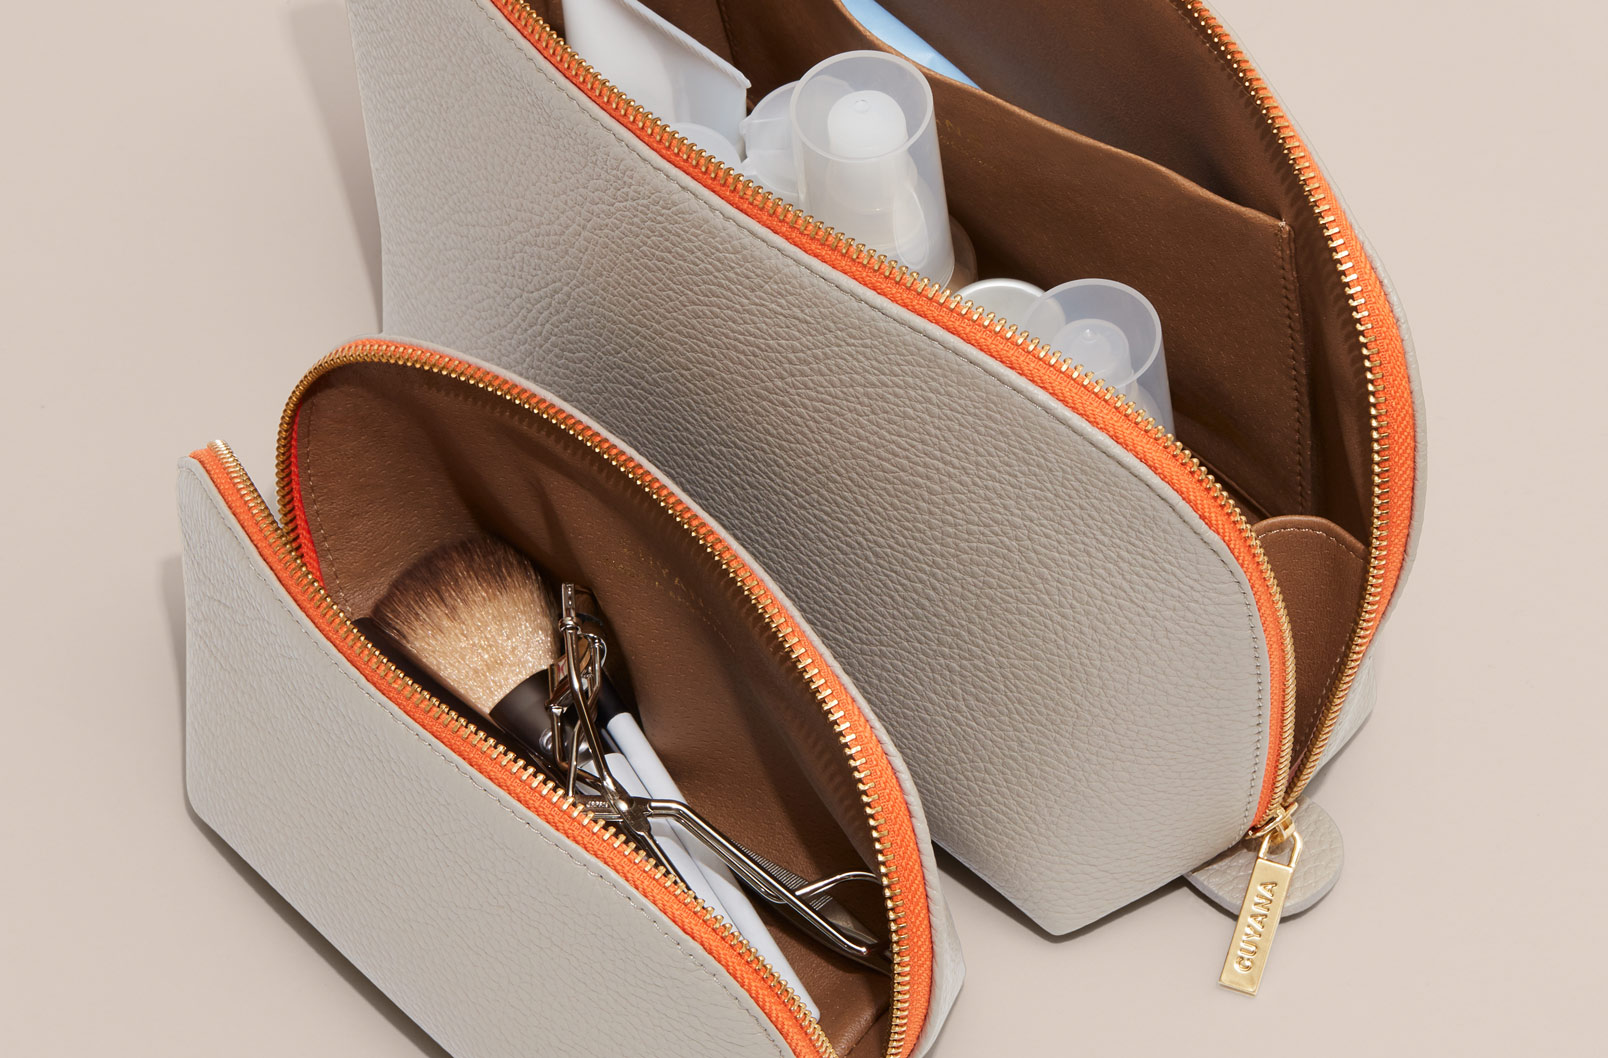 Cuyana Leather Travel Case Set in Stone with toiletries inside